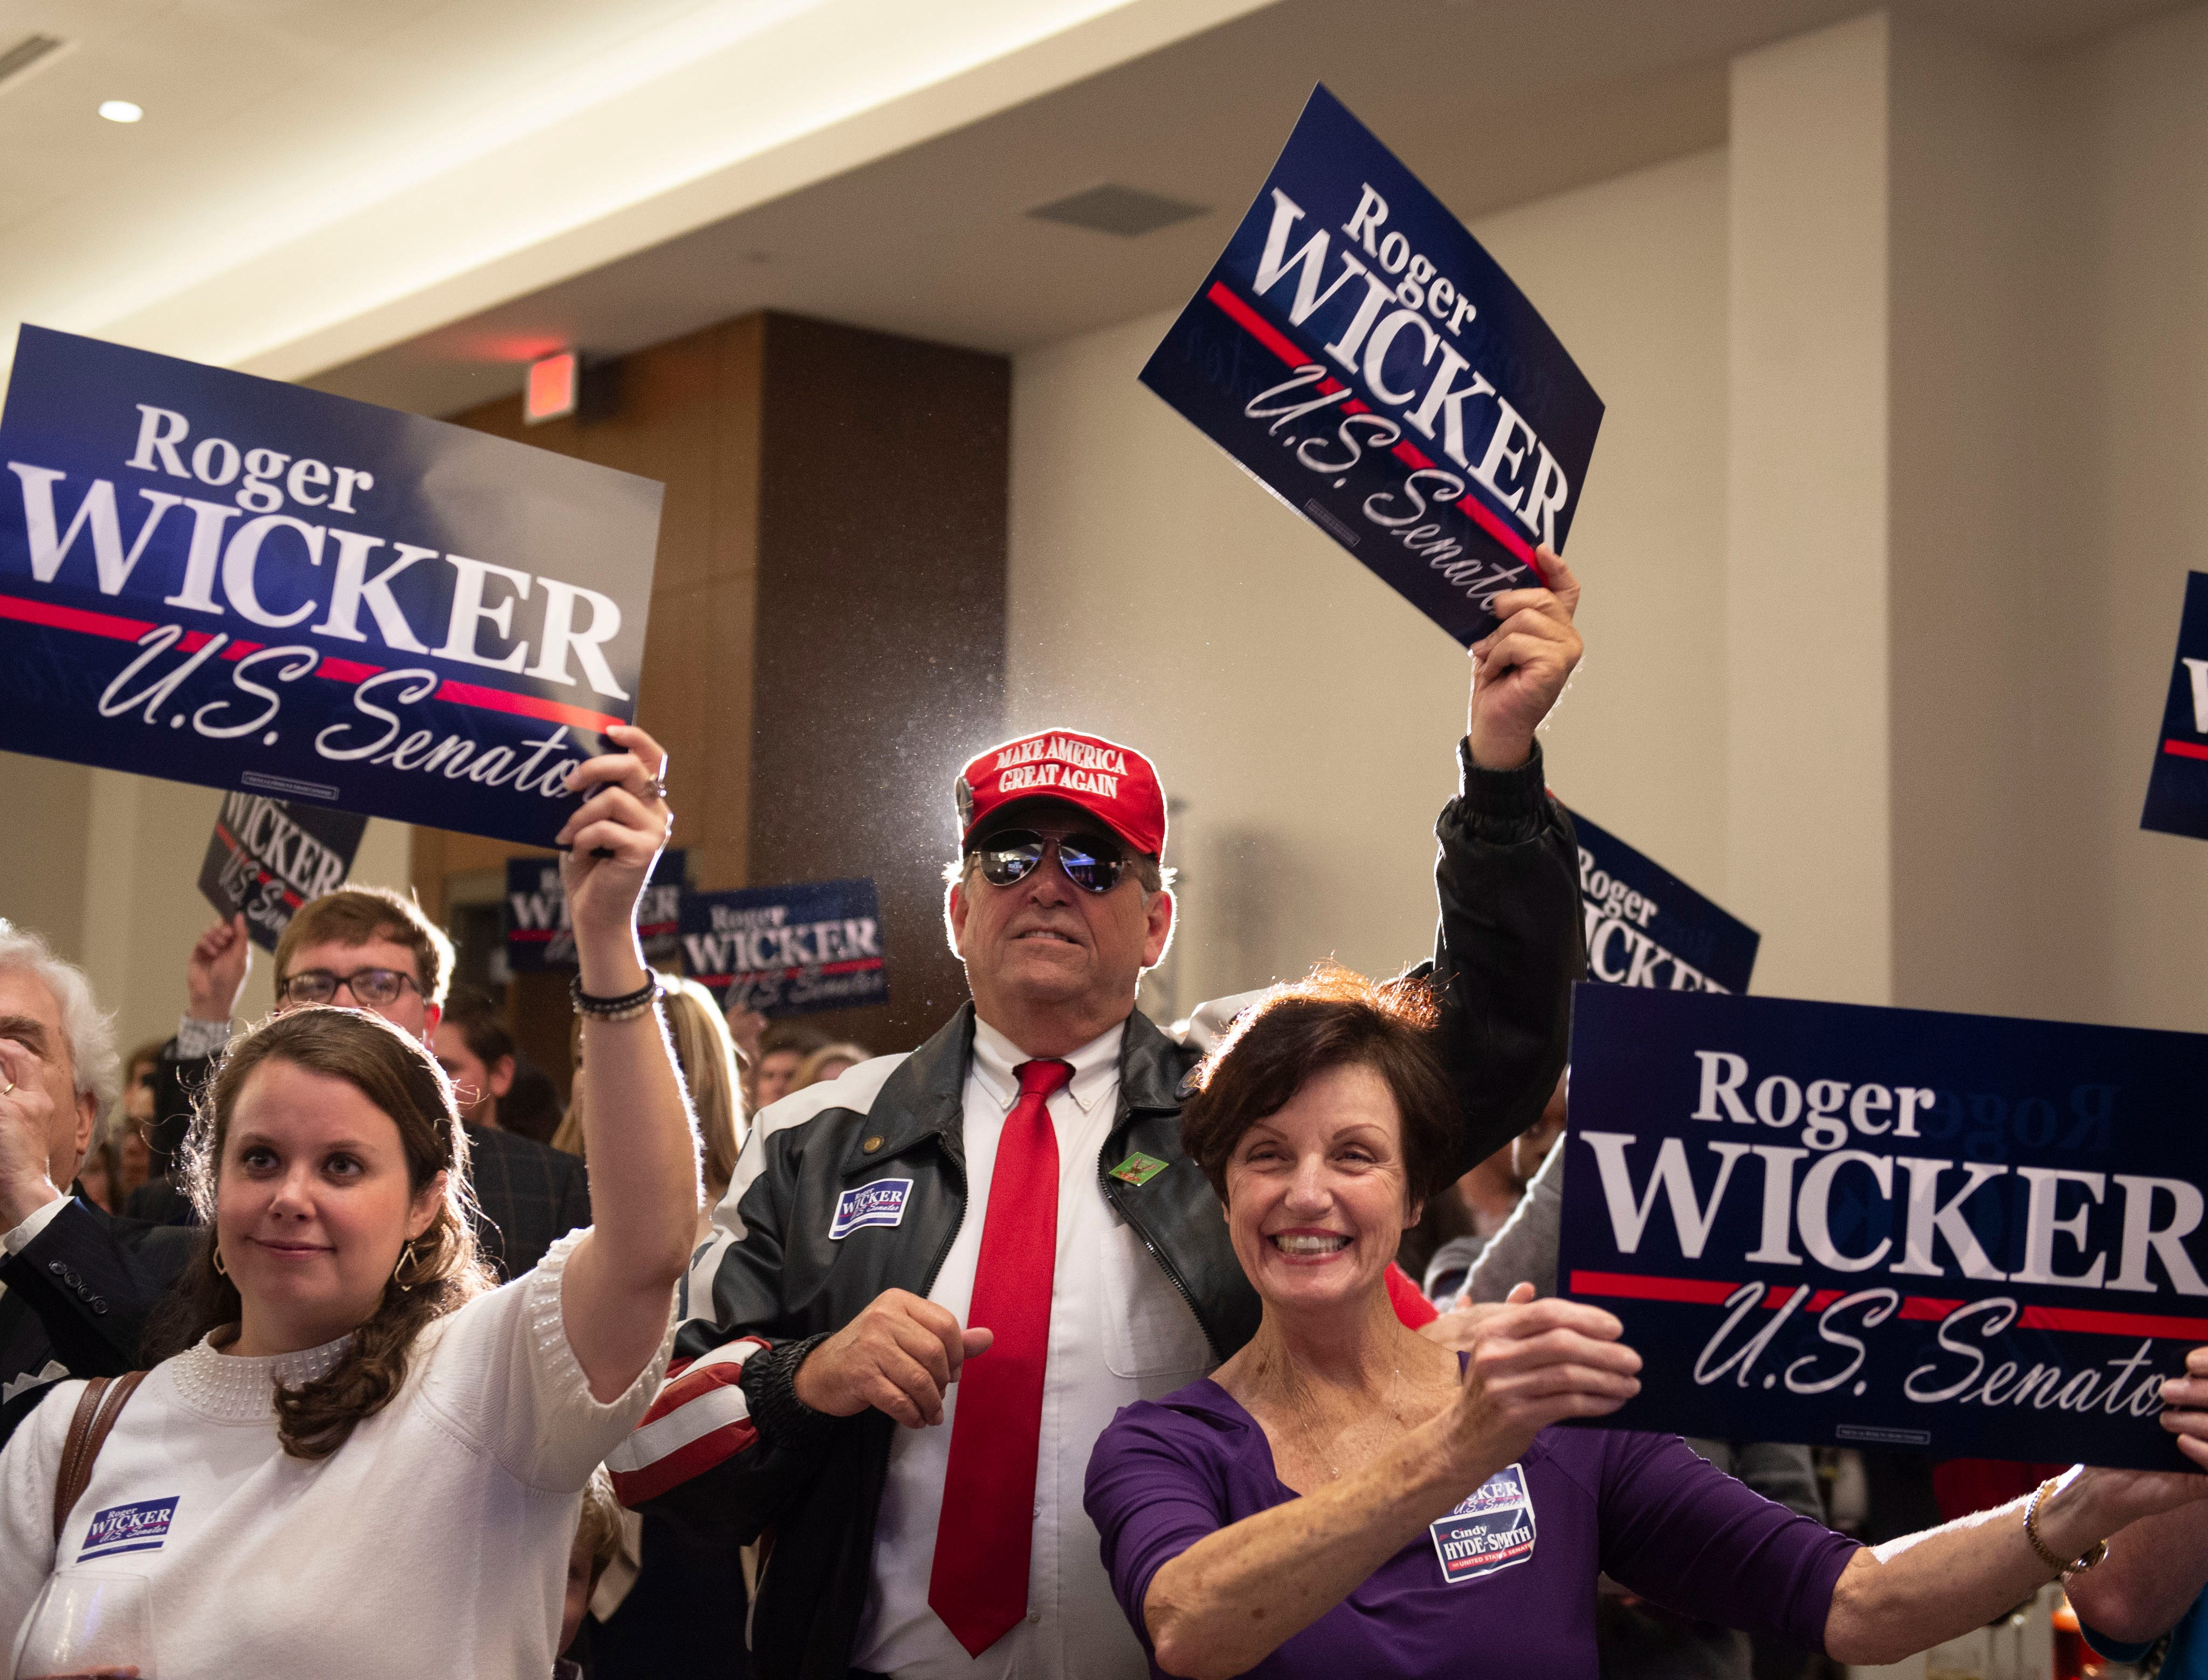 Supporters of U.S. Senator Roger Wicker celebrates his arrival to the ballroom of the Westin hotel in downtown Jackson as Wicker makes his way to the stage to give his acceptance speech. Tuesday, Nov. 6, 2018.